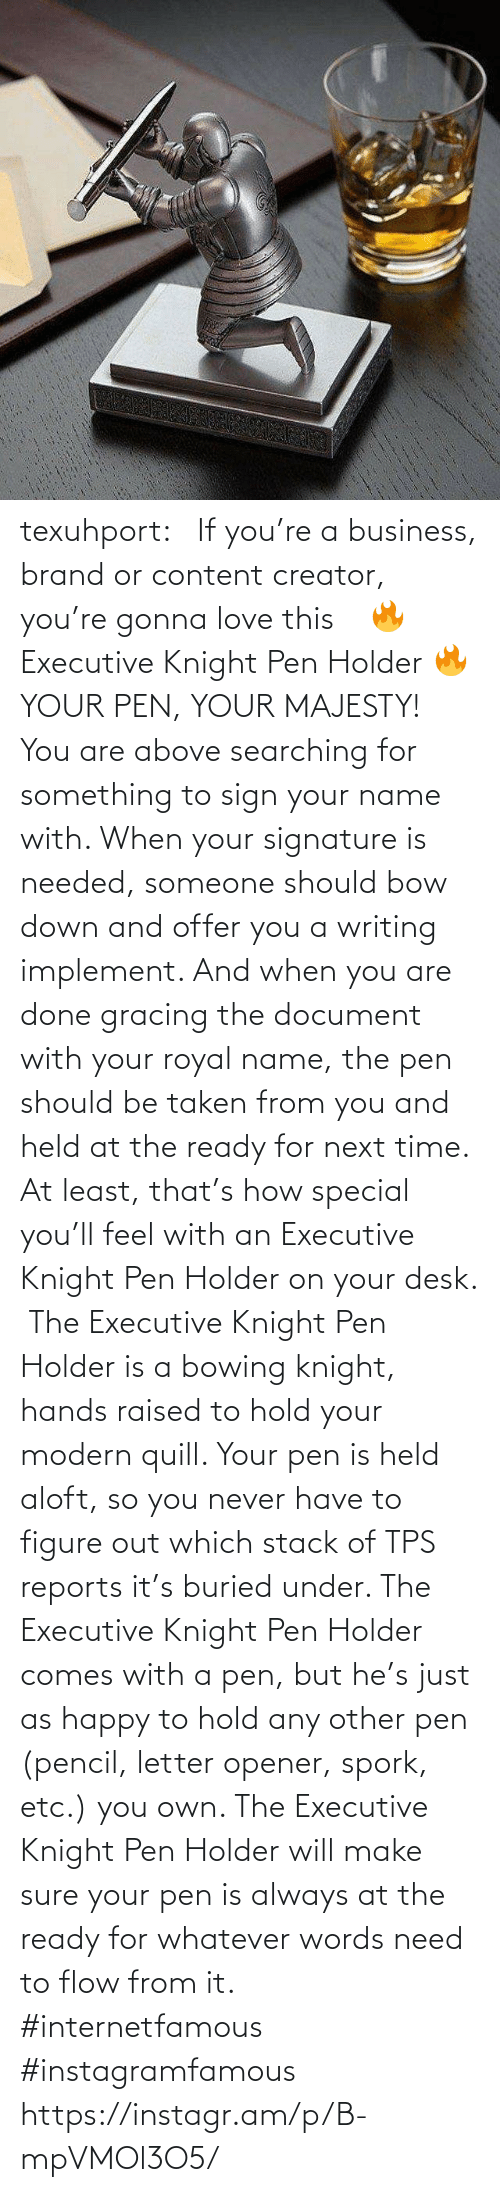 Offer: texuhport:⎆ If you're a business, brand or content creator, you're gonna love this ⎆⁣ 🔥 Executive Knight Pen Holder 🔥⁣ YOUR PEN, YOUR MAJESTY!⁣ ⁣ You are above searching for something to sign your name with. When your signature is needed, someone should bow down and offer you a writing implement. And when you are done gracing the document with your royal name, the pen should be taken from you and held at the ready for next time. At least, that's how special you'll feel with an Executive Knight Pen Holder on your desk.⁣ ⁣ The Executive Knight Pen Holder is a bowing knight, hands raised to hold your modern quill. Your pen is held aloft, so you never have to figure out which stack of TPS reports it's buried under. The Executive Knight Pen Holder comes with a pen, but he's just as happy to hold any other pen (pencil, letter opener, spork, etc.) you own. The Executive Knight Pen Holder will make sure your pen is always at the ready for whatever words need to flow from it.⁣ #internetfamous  #instagramfamous https://instagr.am/p/B-mpVMOl3O5/